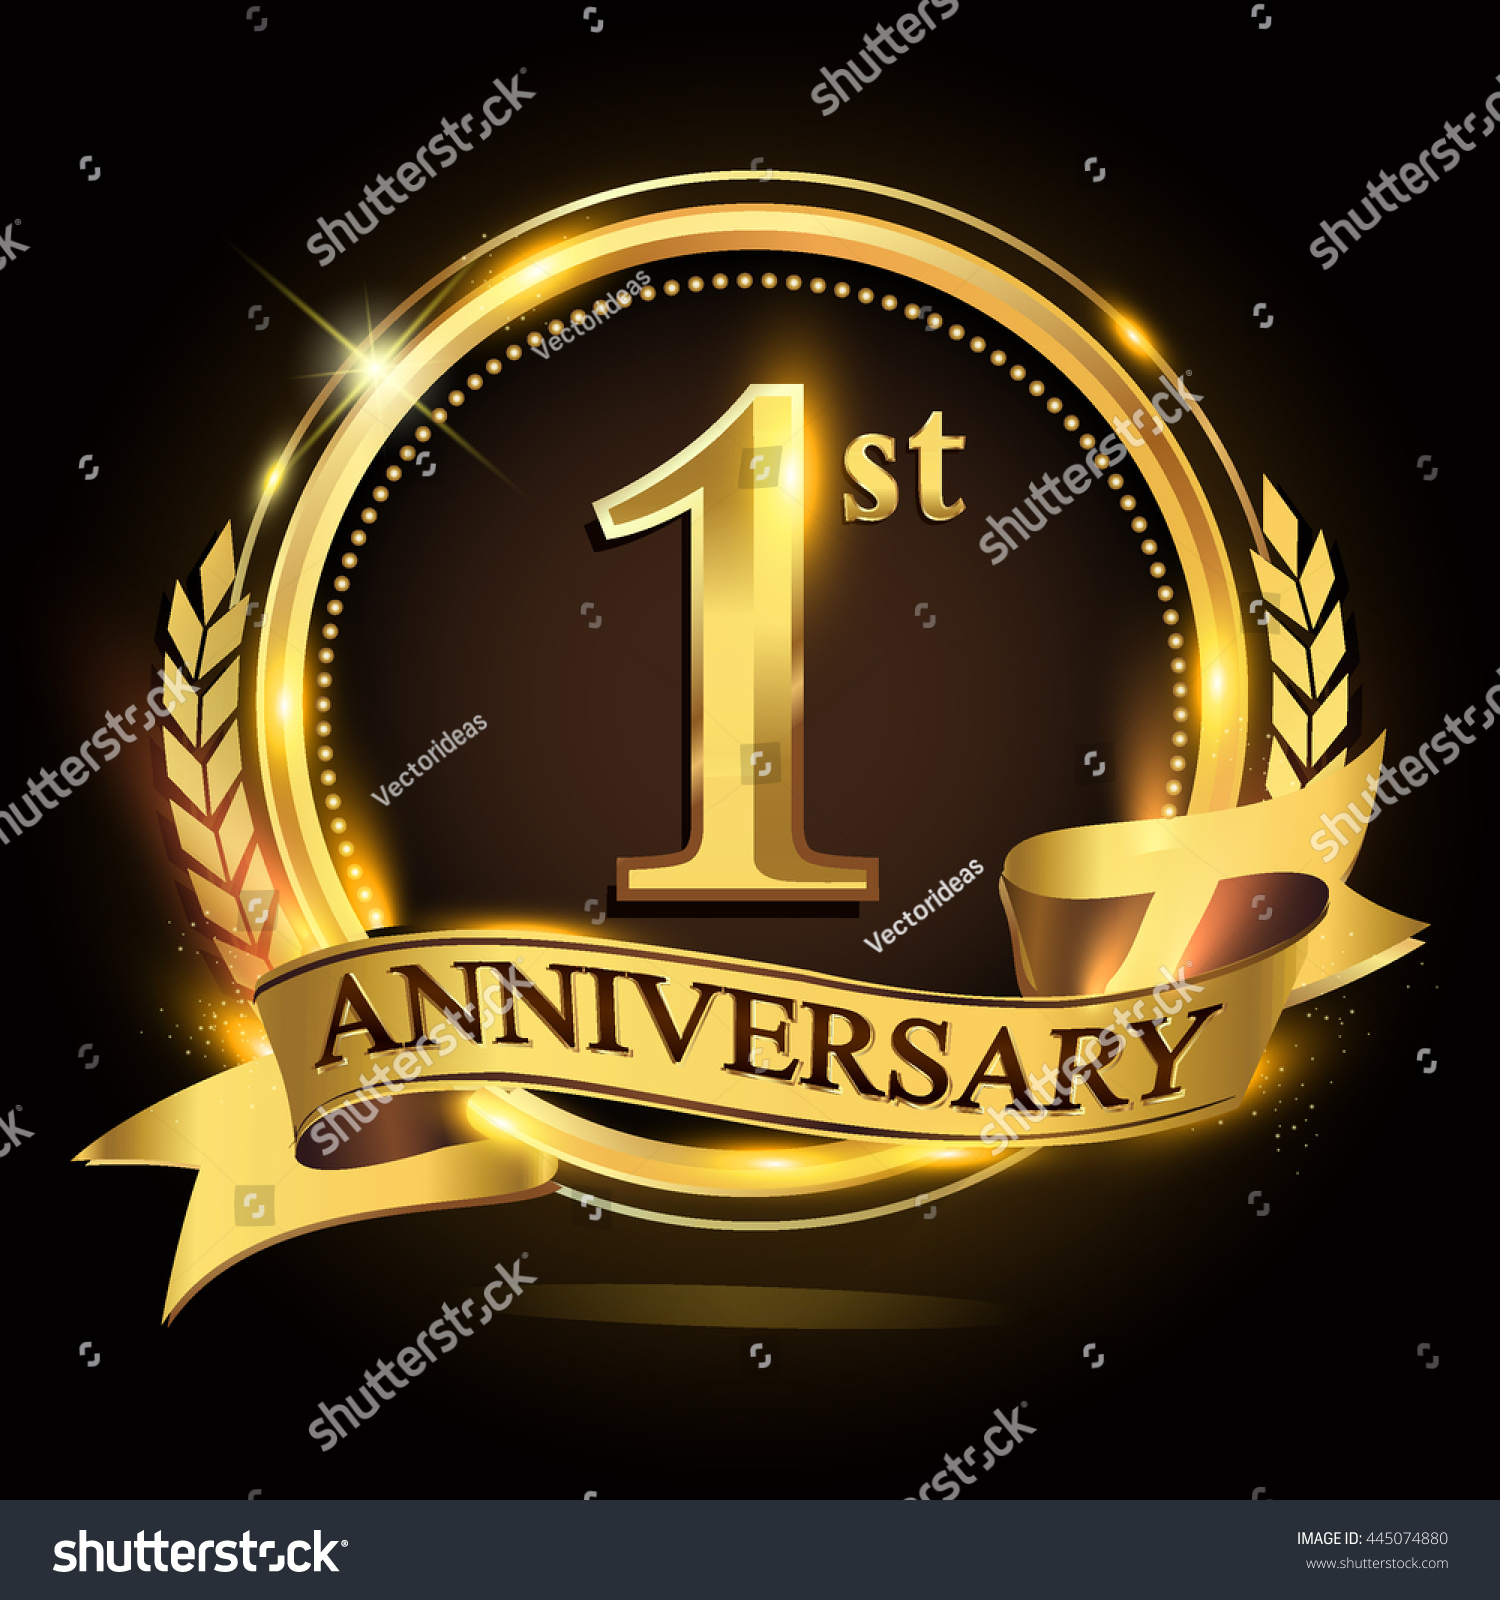 St golden anniversary logo ring ribbon stock vector